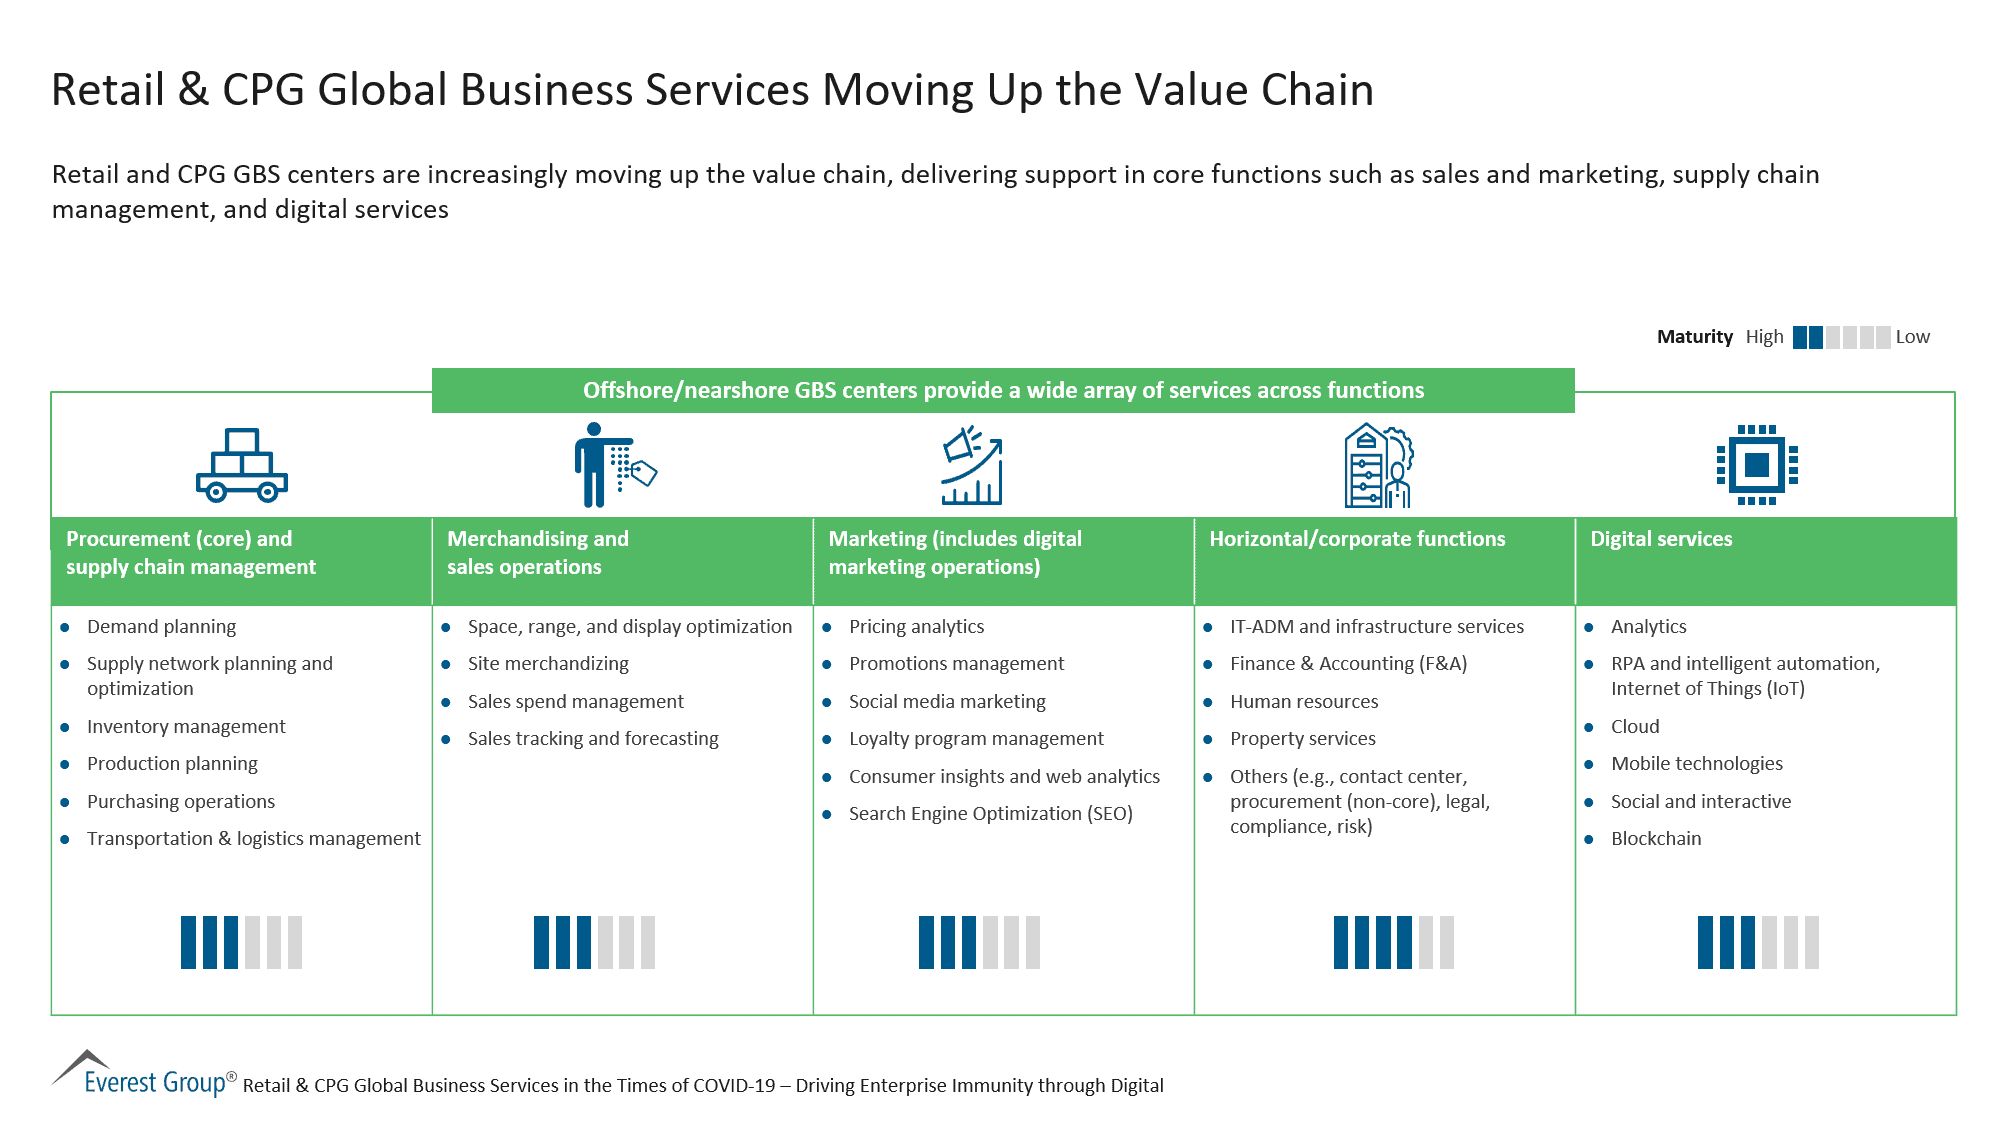 Retail & CPG Global Business Services Moving Up the Value Chain